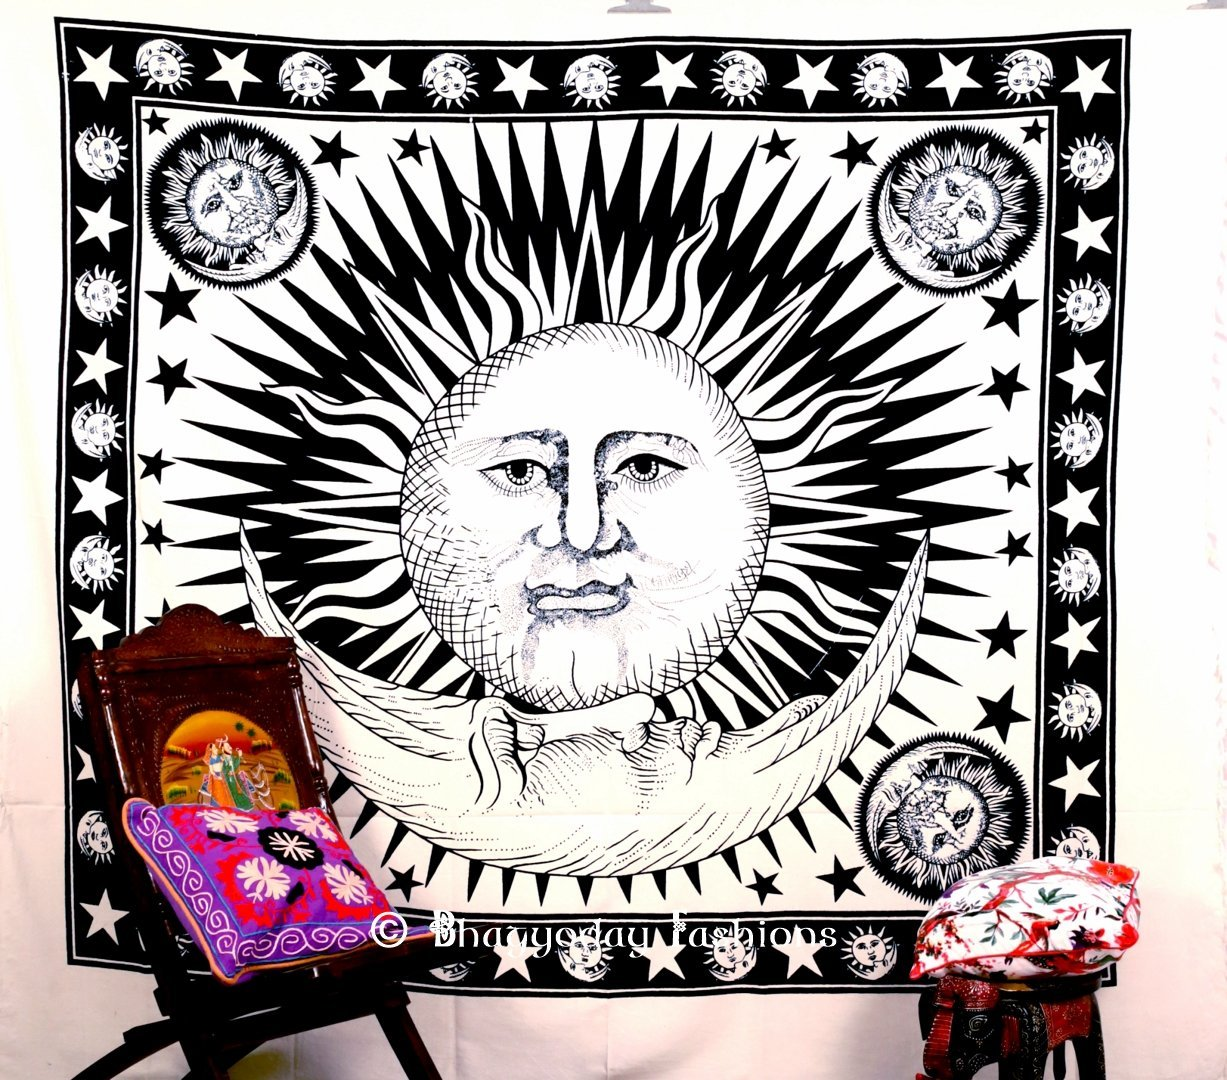 Amazon.com - Indian Sun Hippie Hippy Tapestry Wall Hanging Throw Cotton Bed Cover Bohemian Bed Decor Bed Spread Ethnic Decorative Art Table Cloth -